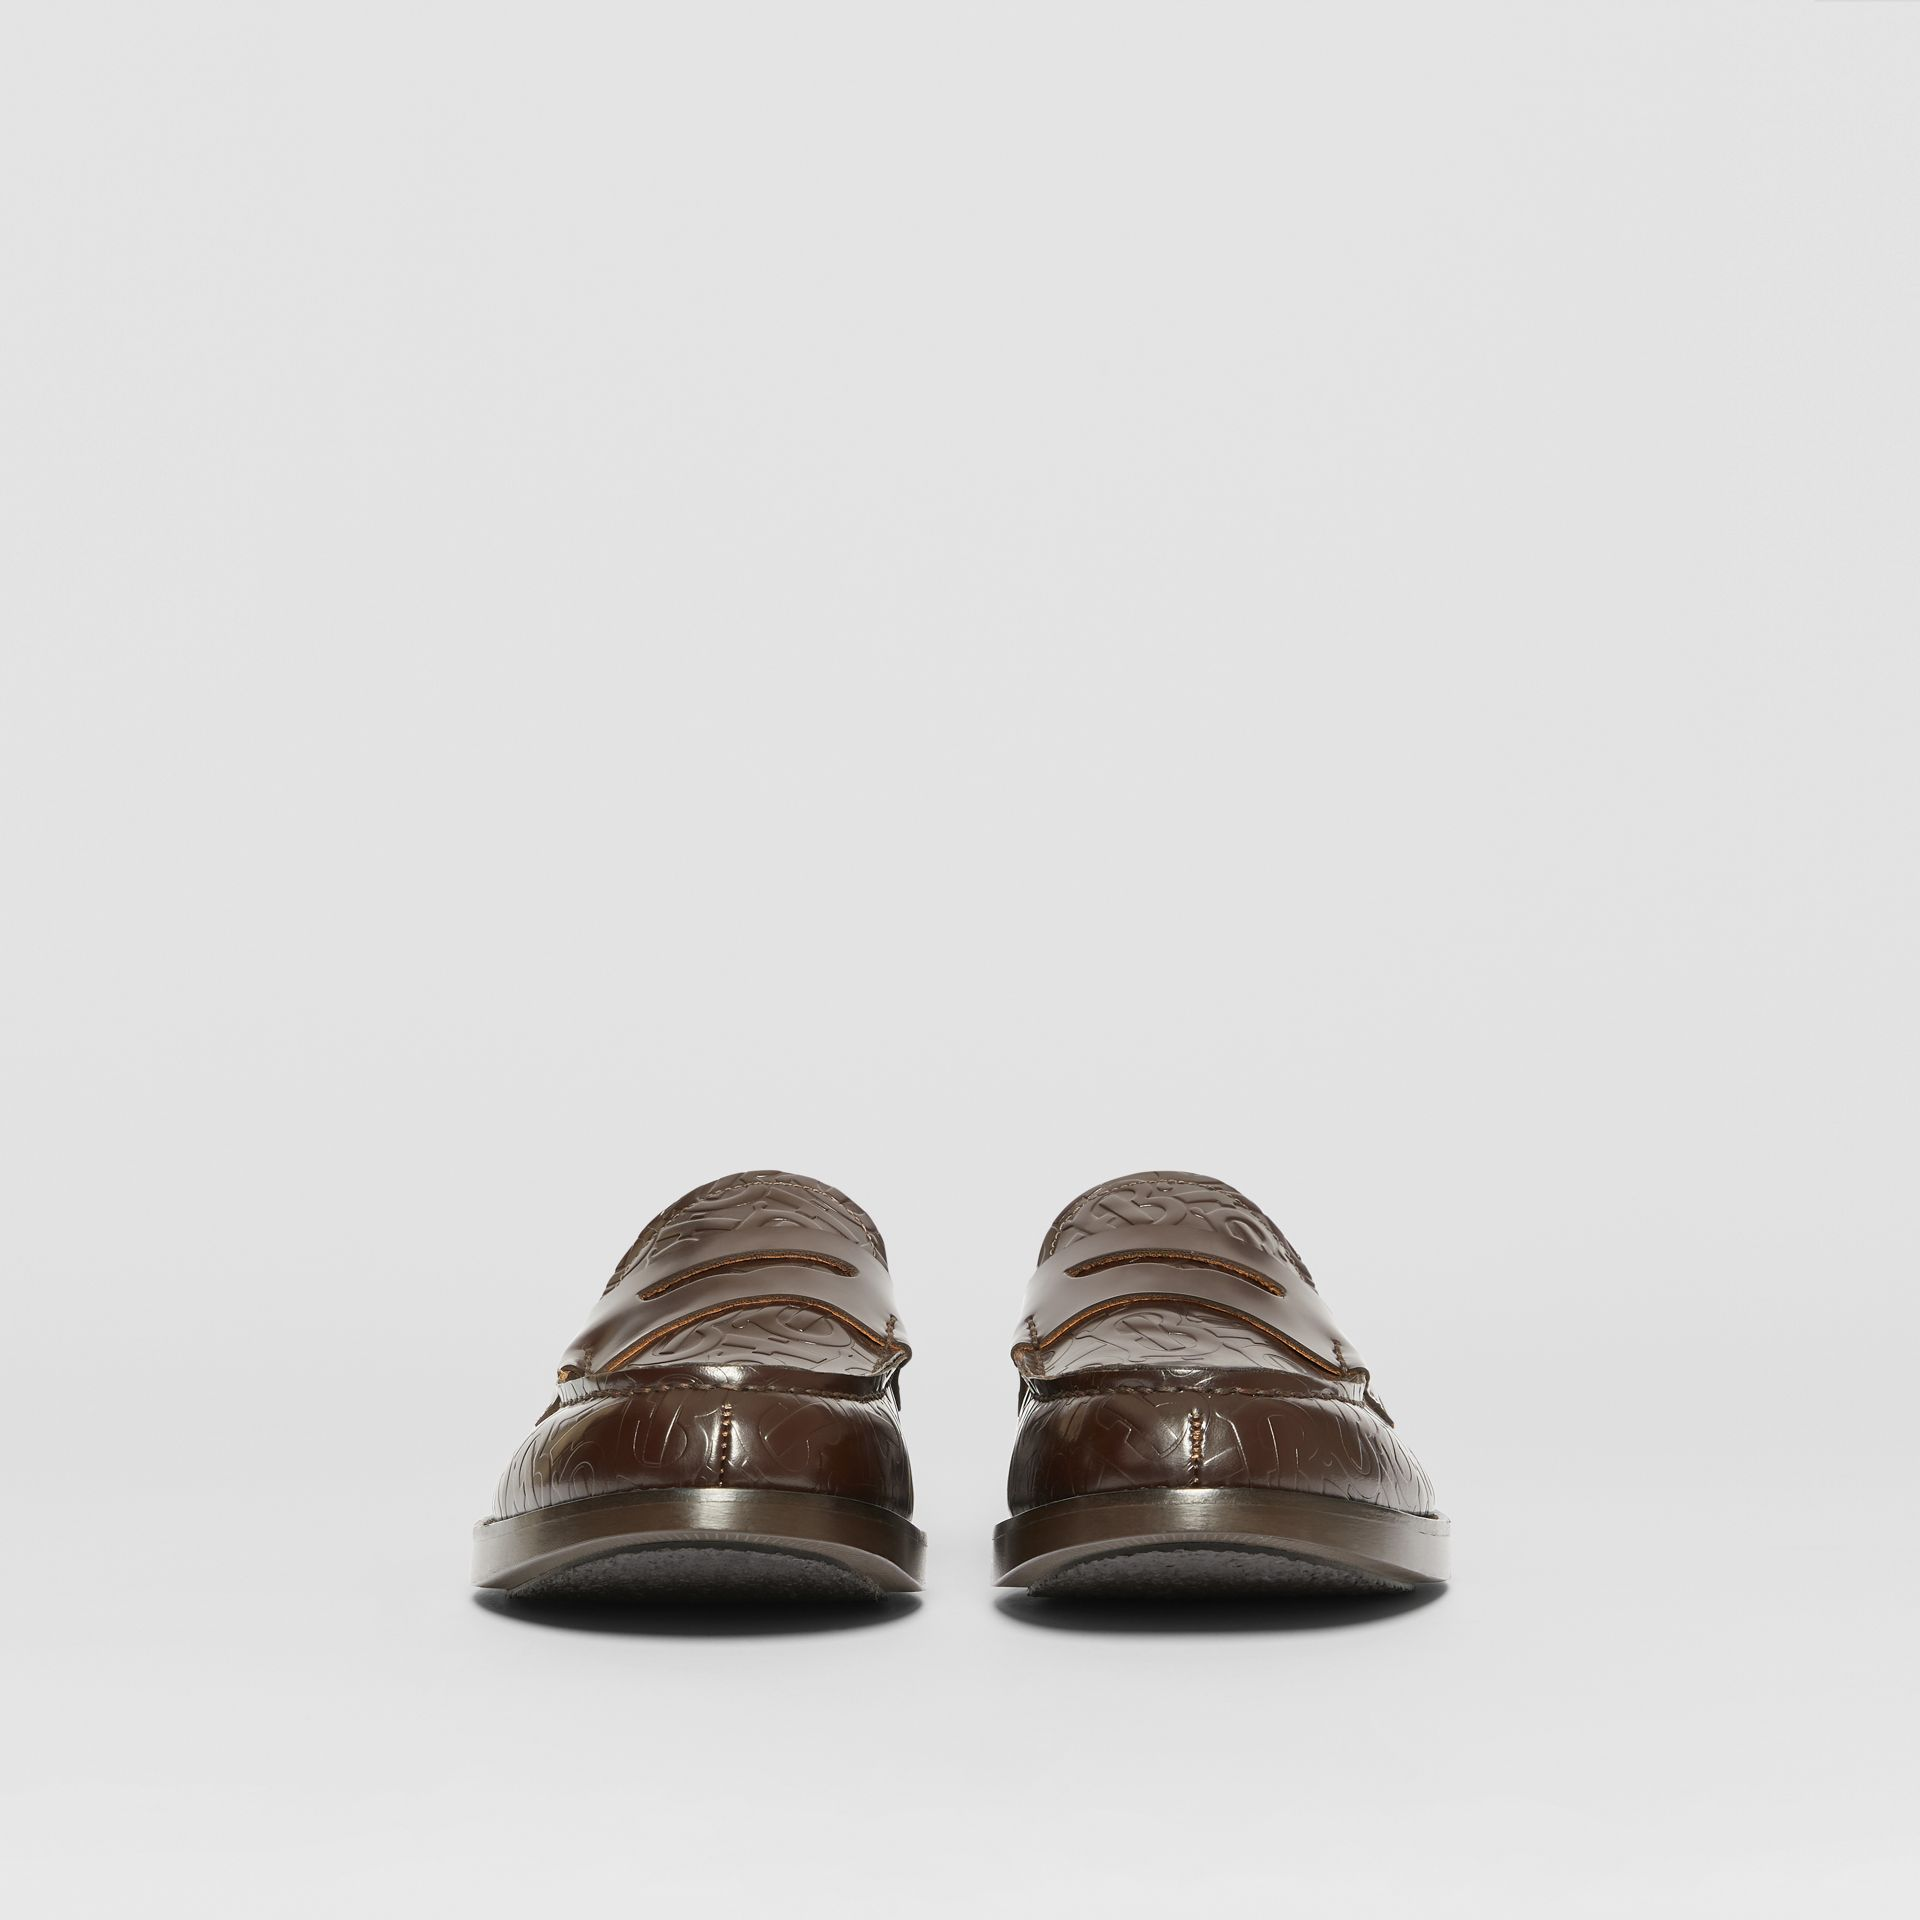 D-ring Detail Monogram Leather Loafers in Chocolate - Men | Burberry Canada - gallery image 2